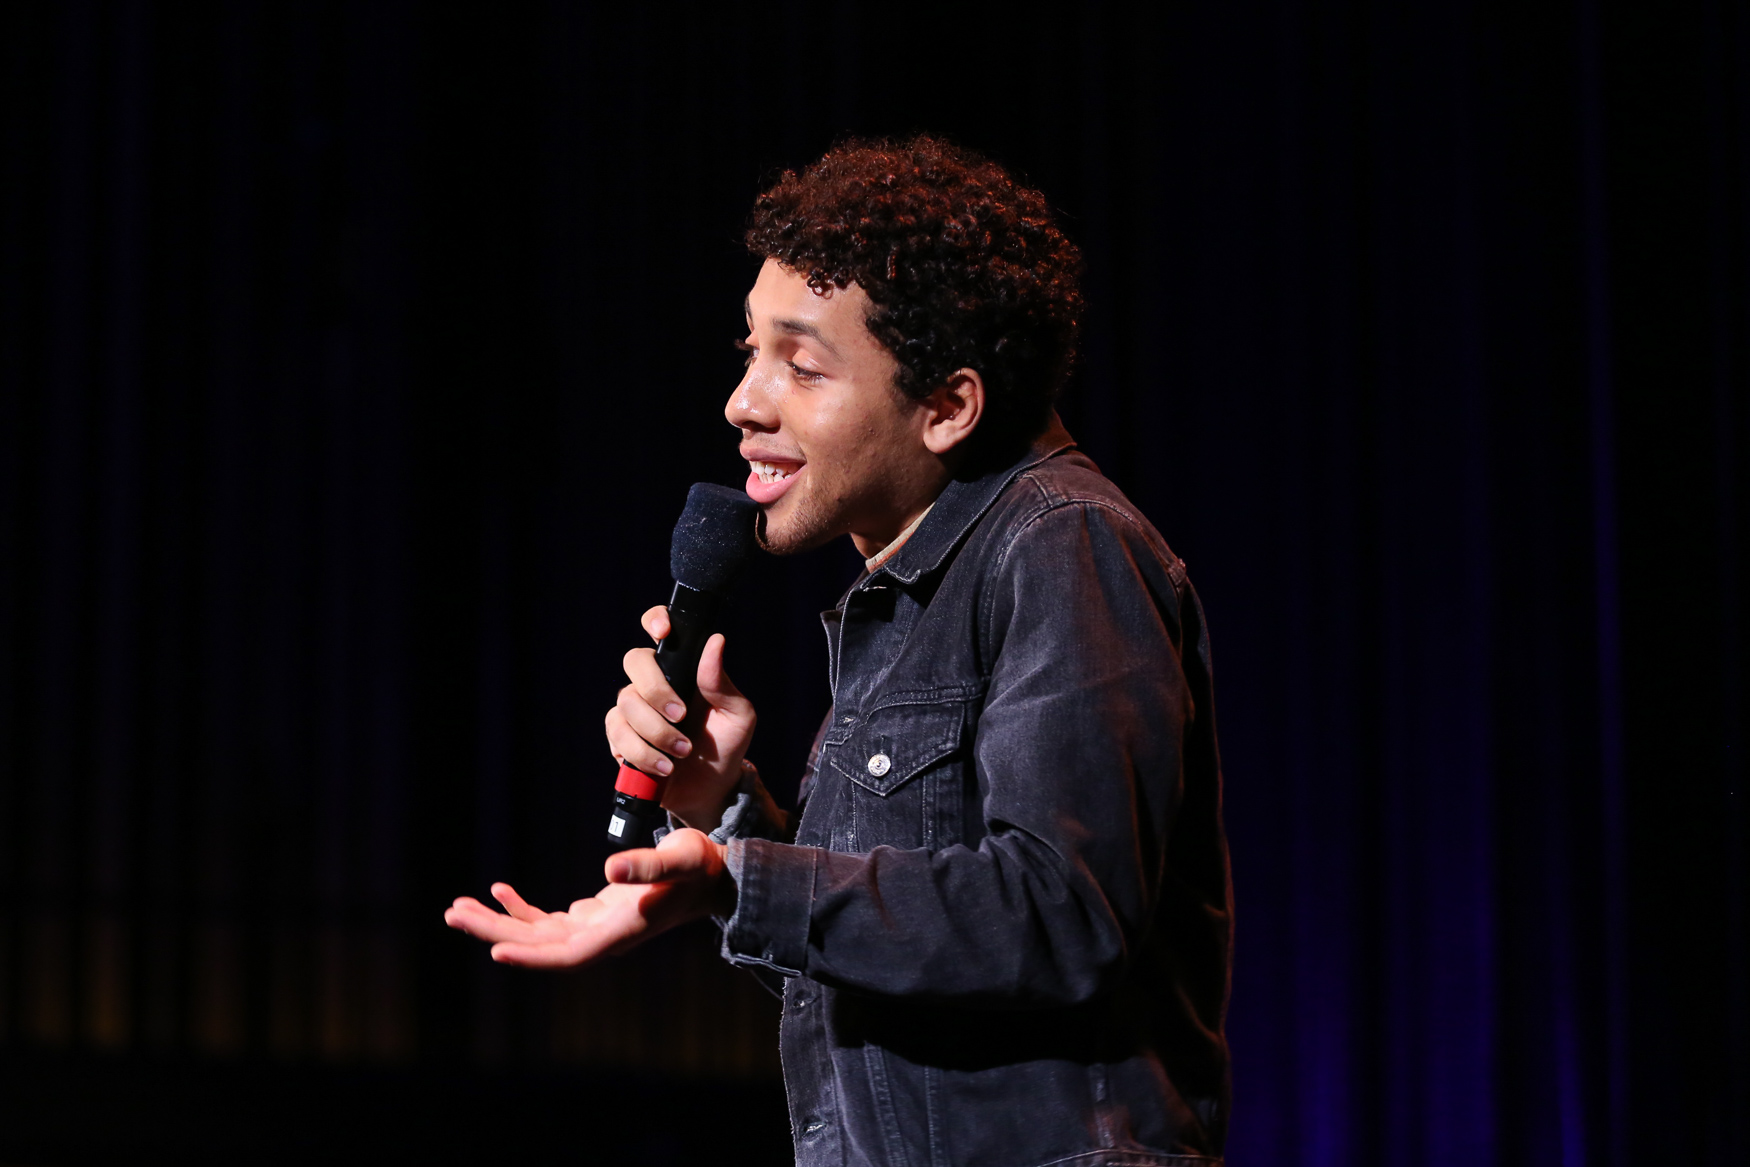 Jaboukie Young-White, a correspondent for The Daily Show, performed at The Bentzen Ball on October 28. (Amanda Andrade-Rhoades/DC Refined)